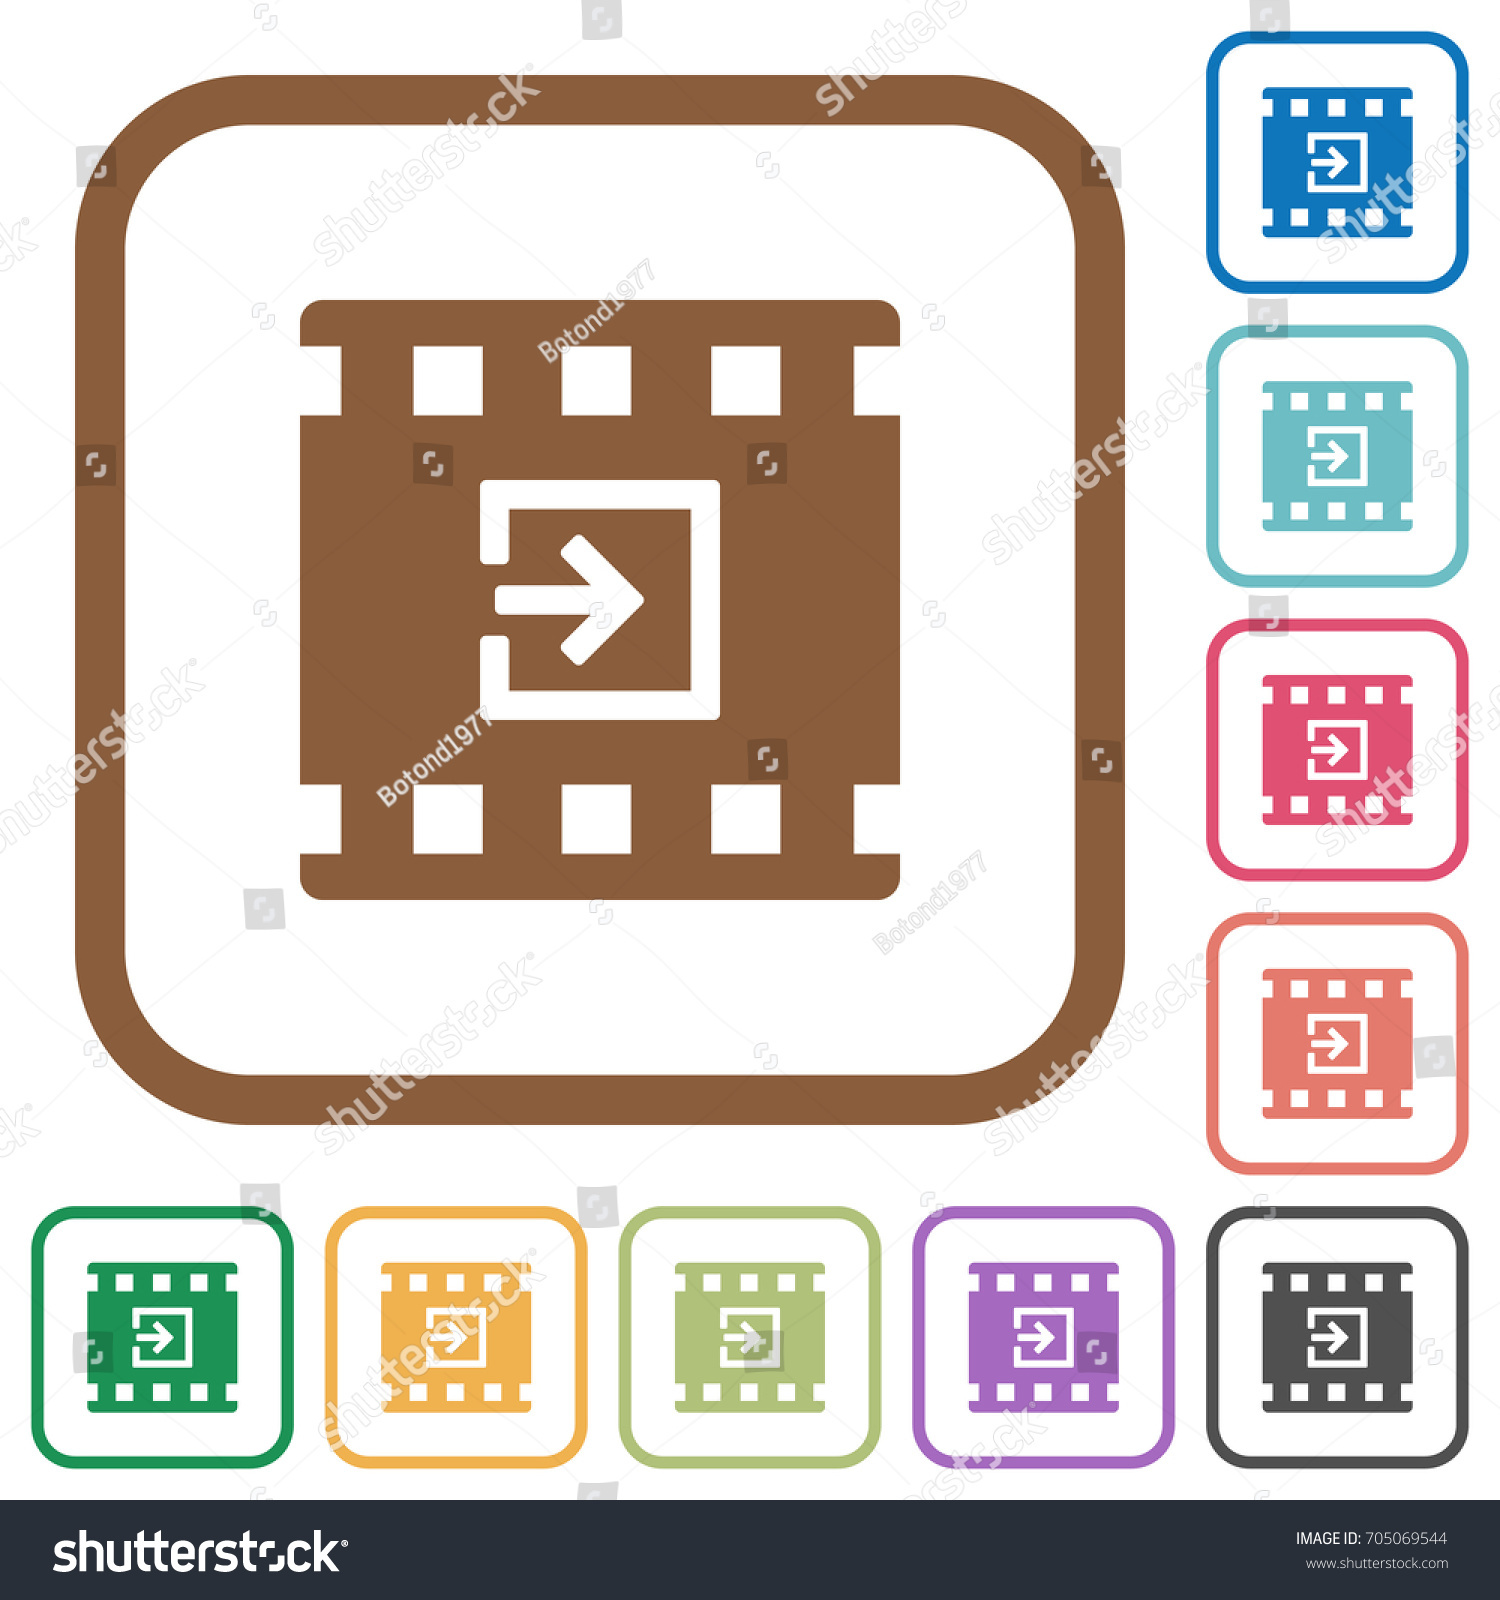 Import Movie Simple Icons Color Rounded Stock Photo (Photo, Vector ...